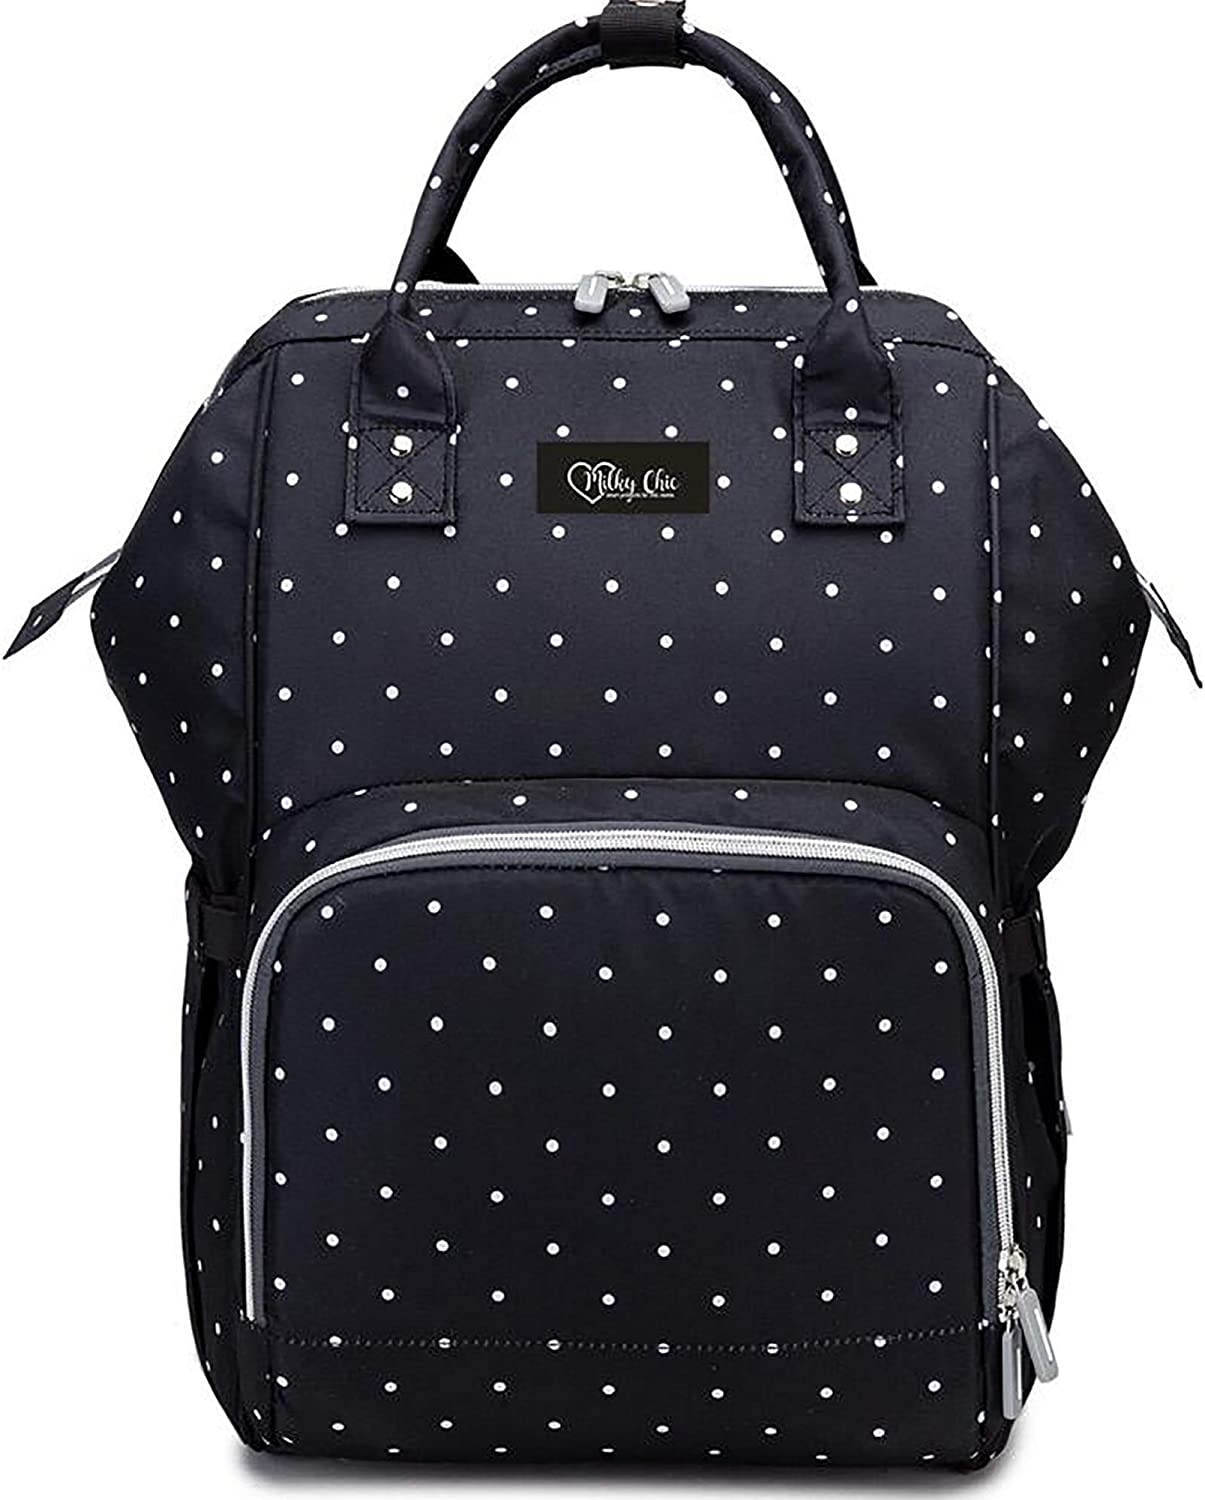 Milky Chic Mommy Diaper Bag- Waterproof USB Charging Port Stroller Straps Changing Pad